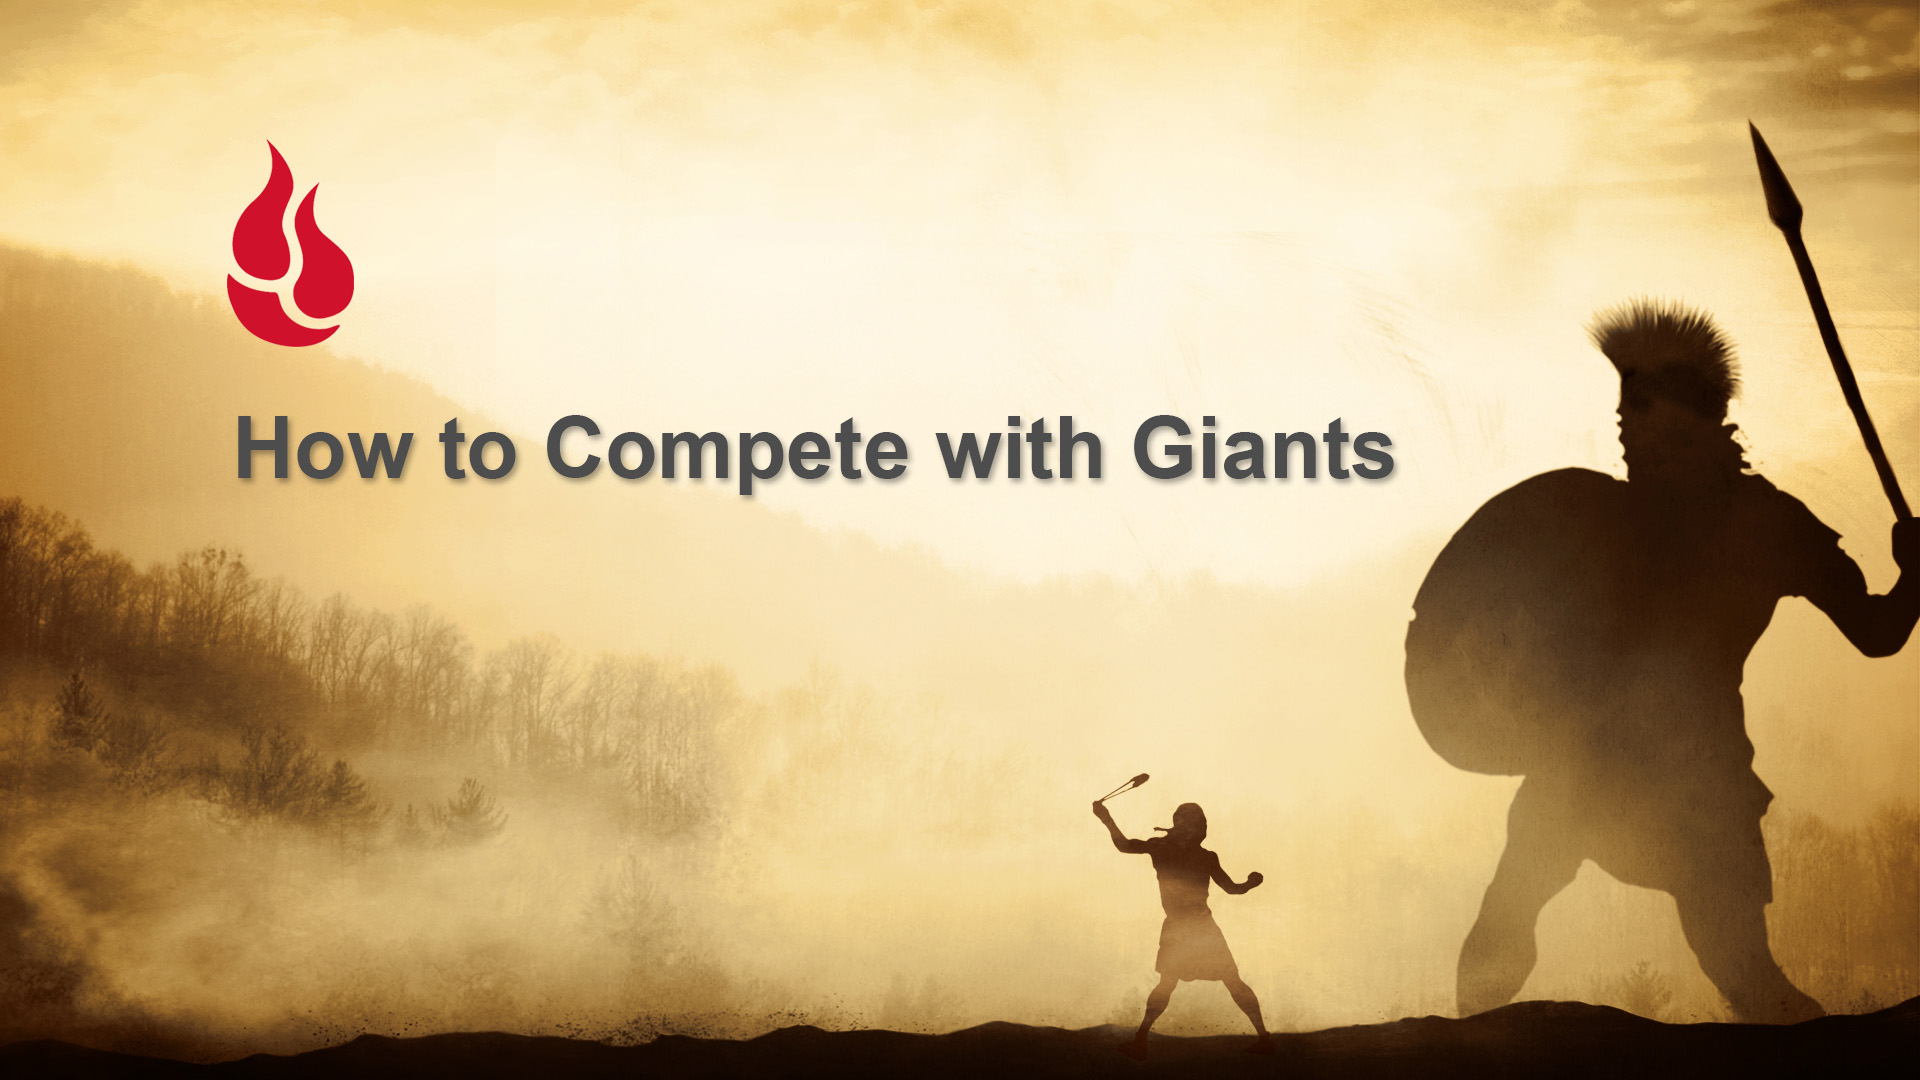 How to Compete with Giants